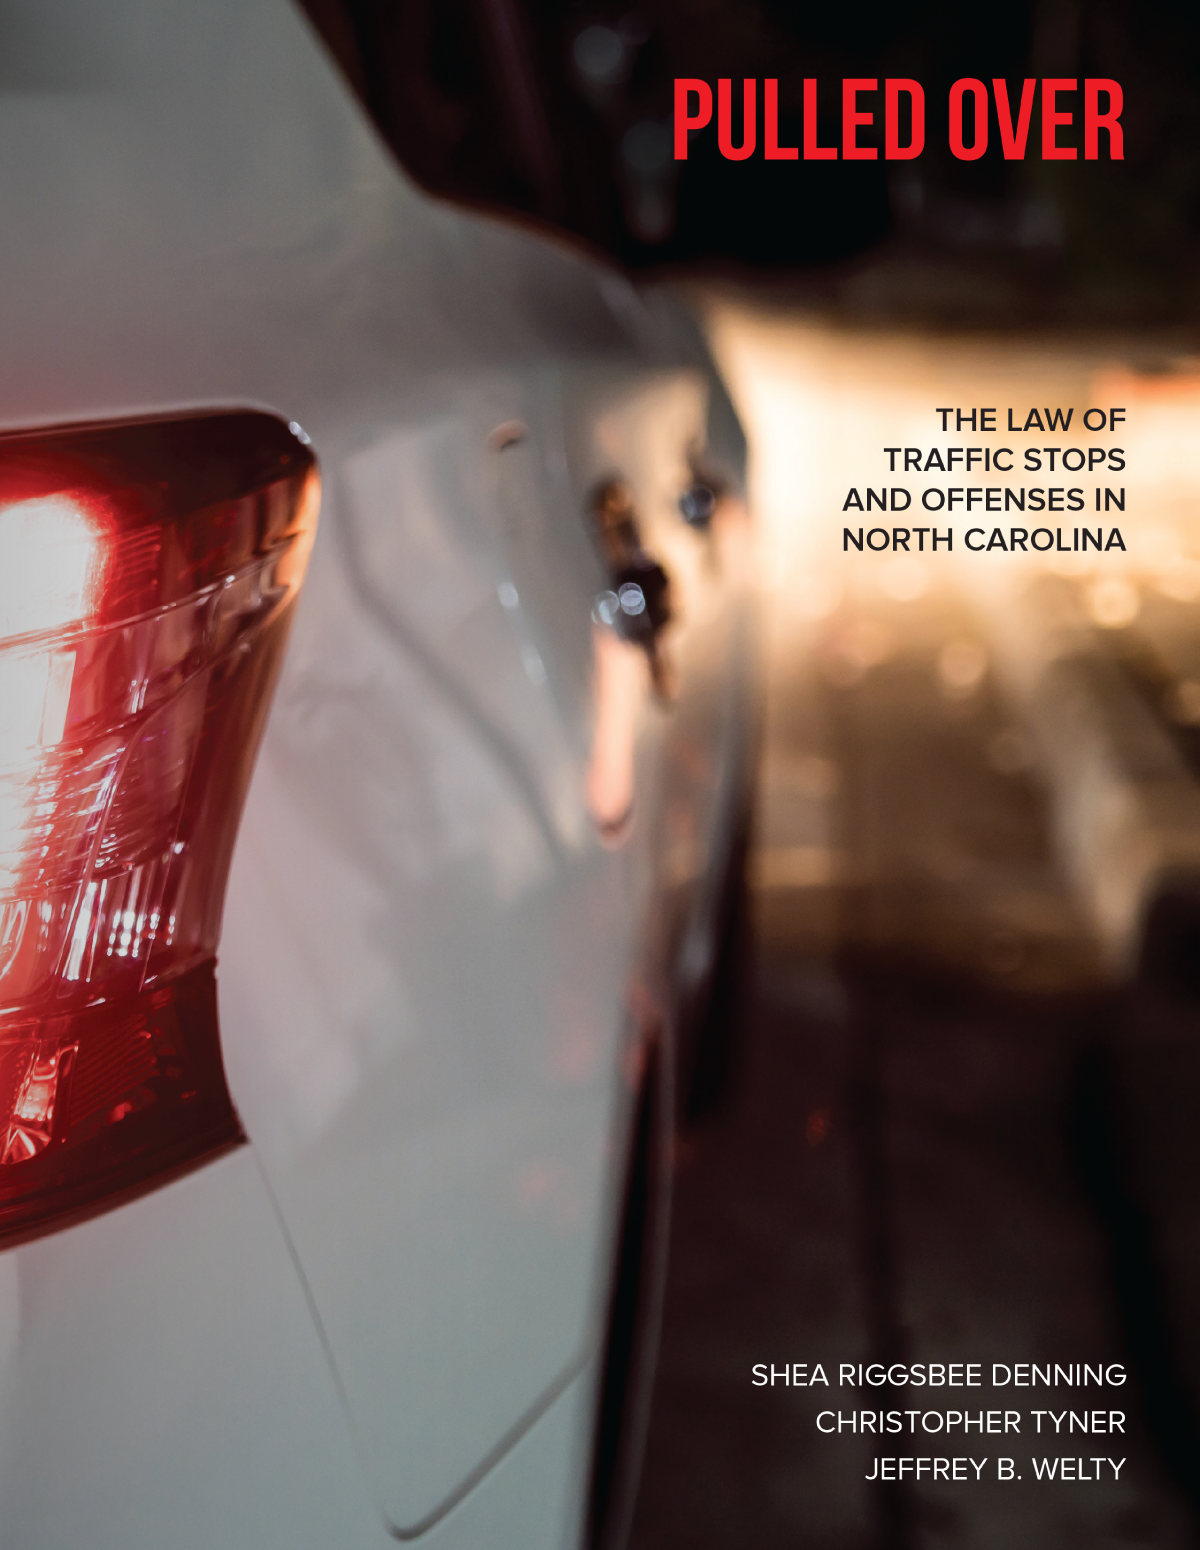 Cover Image for Pulled Over Law of Traffic Stops